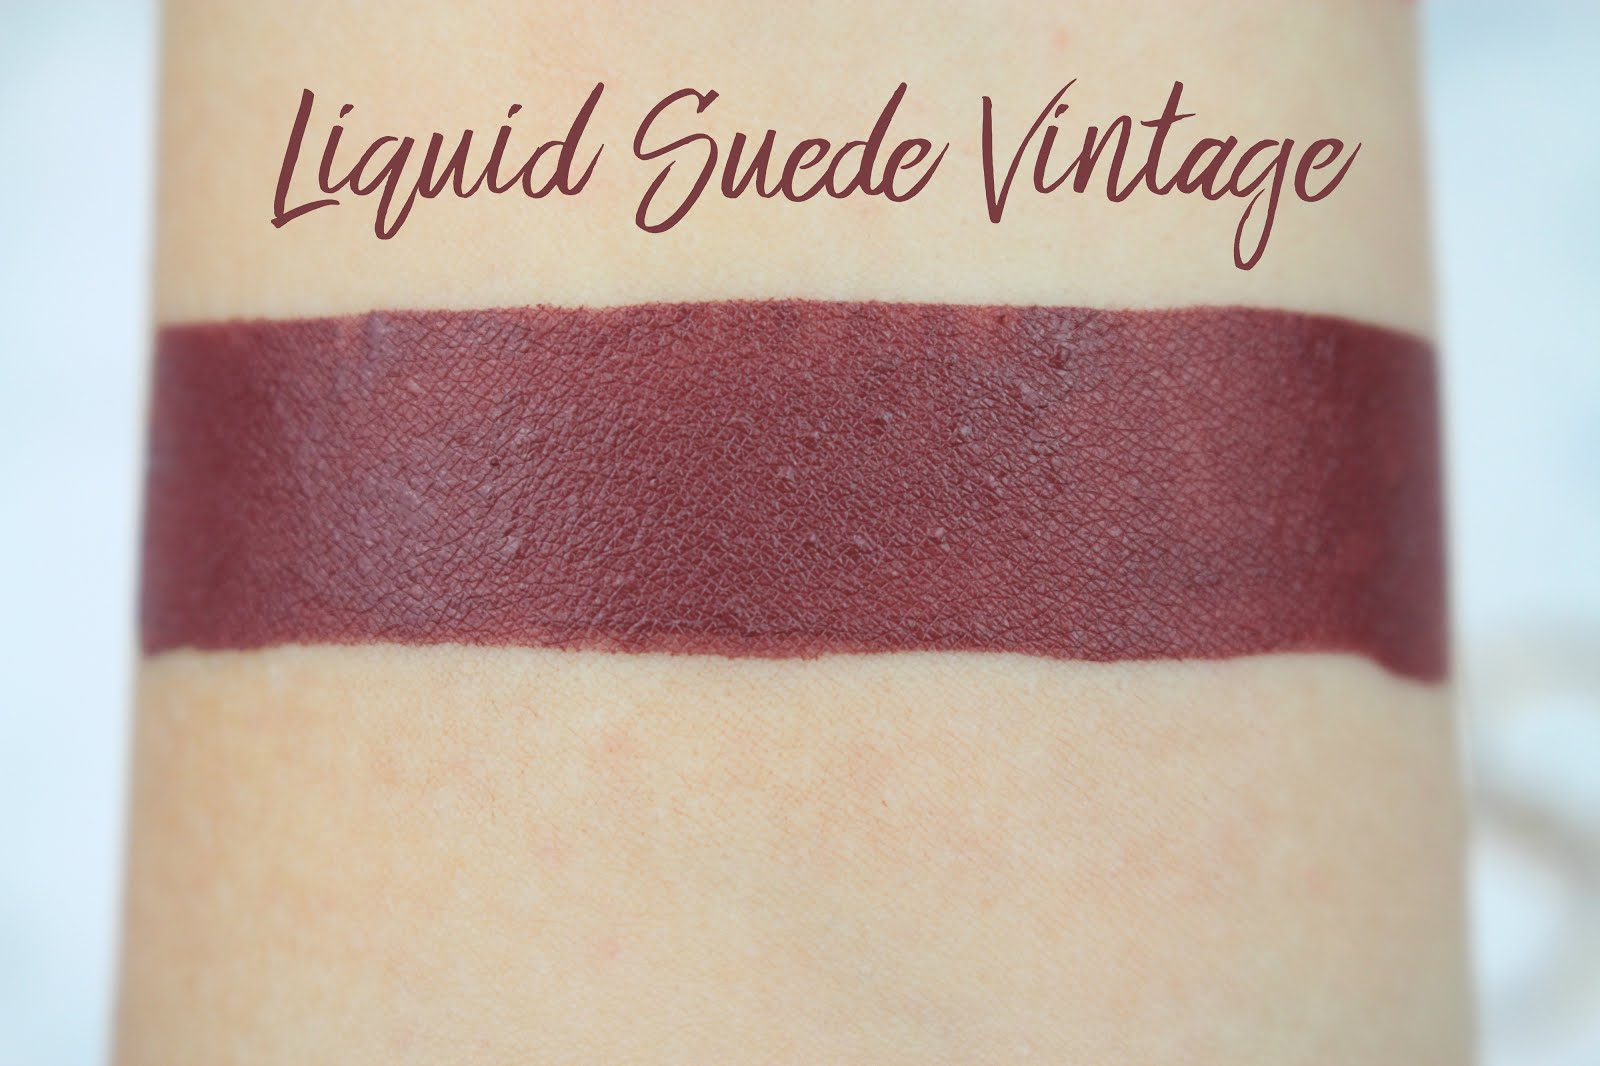 nyx, nyx liquid lipstick, nyx liquid suede, nyx liquid suede vintage, nyx liquid suede vintage swatch, nay vintage , nyx vintage swatch, liquid suede swatch, liquid suede vintage swatch, nyx liquid suede swatches, nyx liquid lingerie, nelly ray, nelly ray blog, different is better